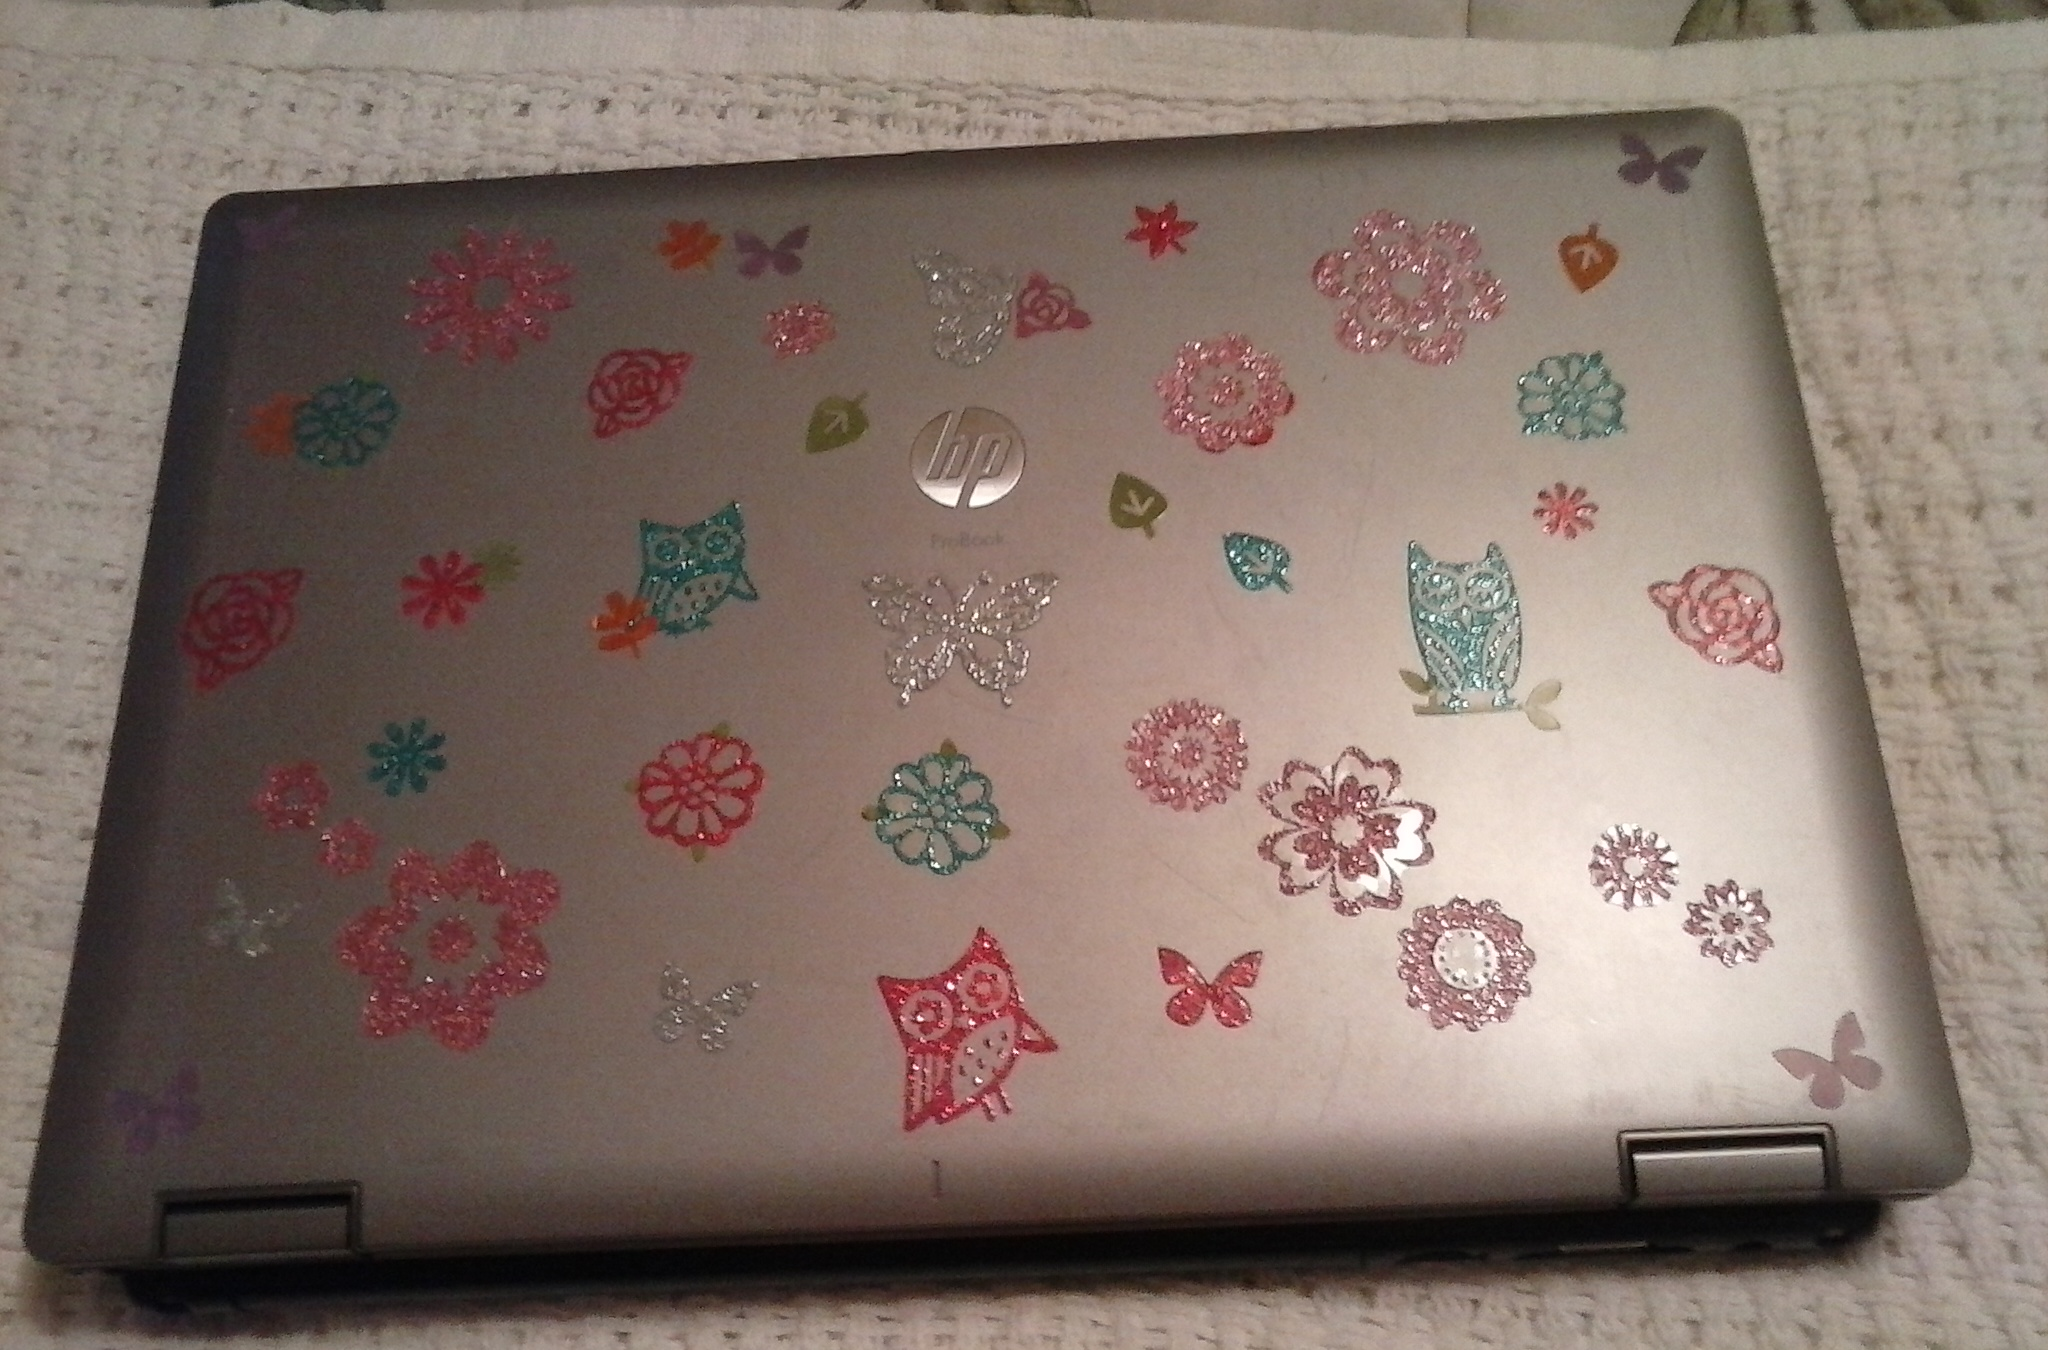 Going crazy with the stickers on my laptop, Jan. 2015